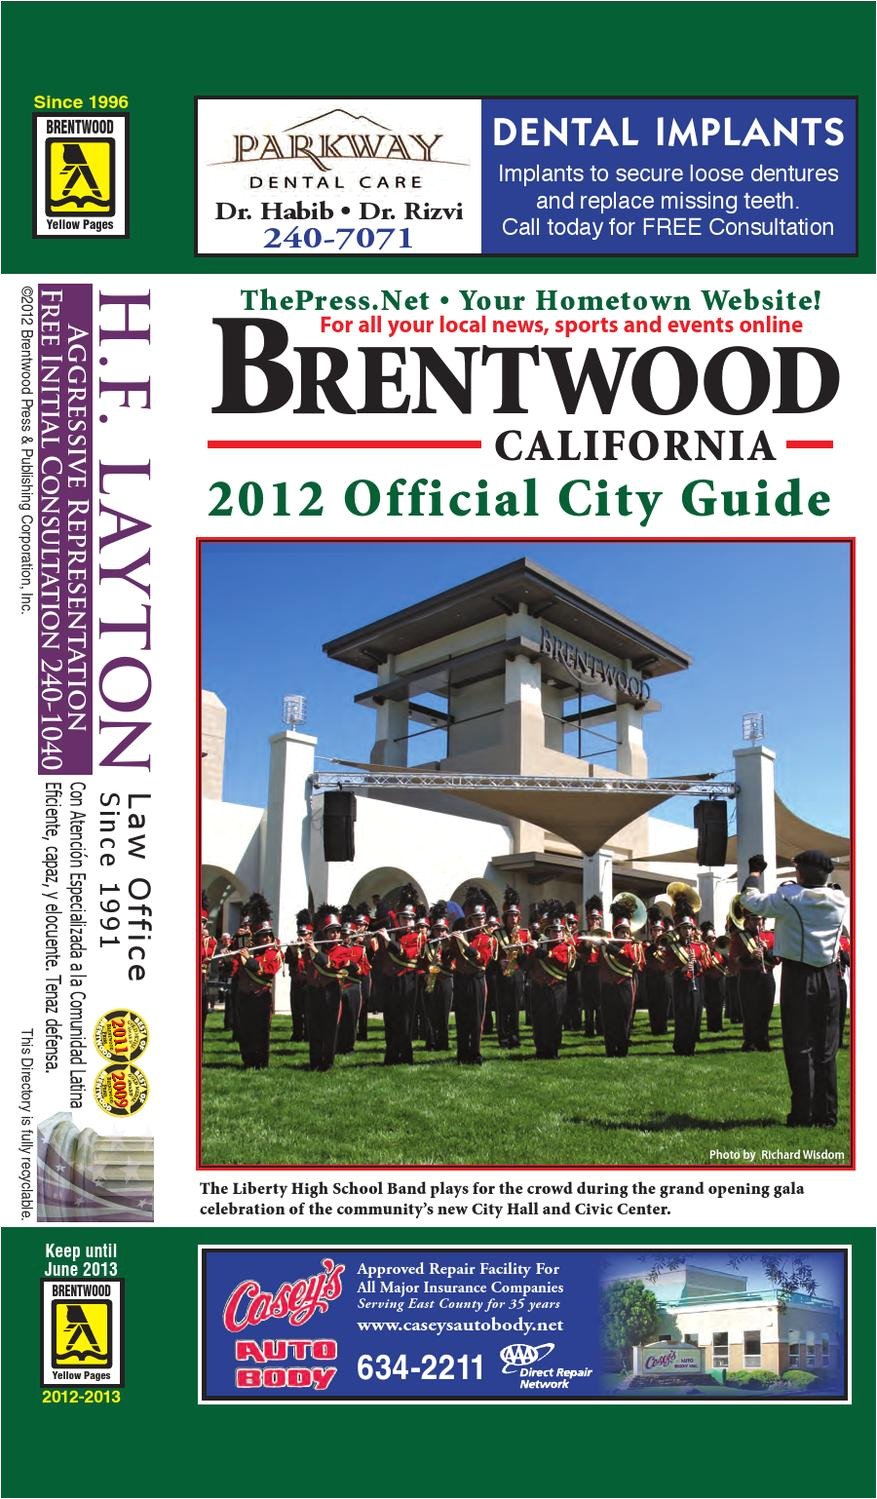 brentwood official city guide and business directory 2012 2013 by brentwood press publishing issuu